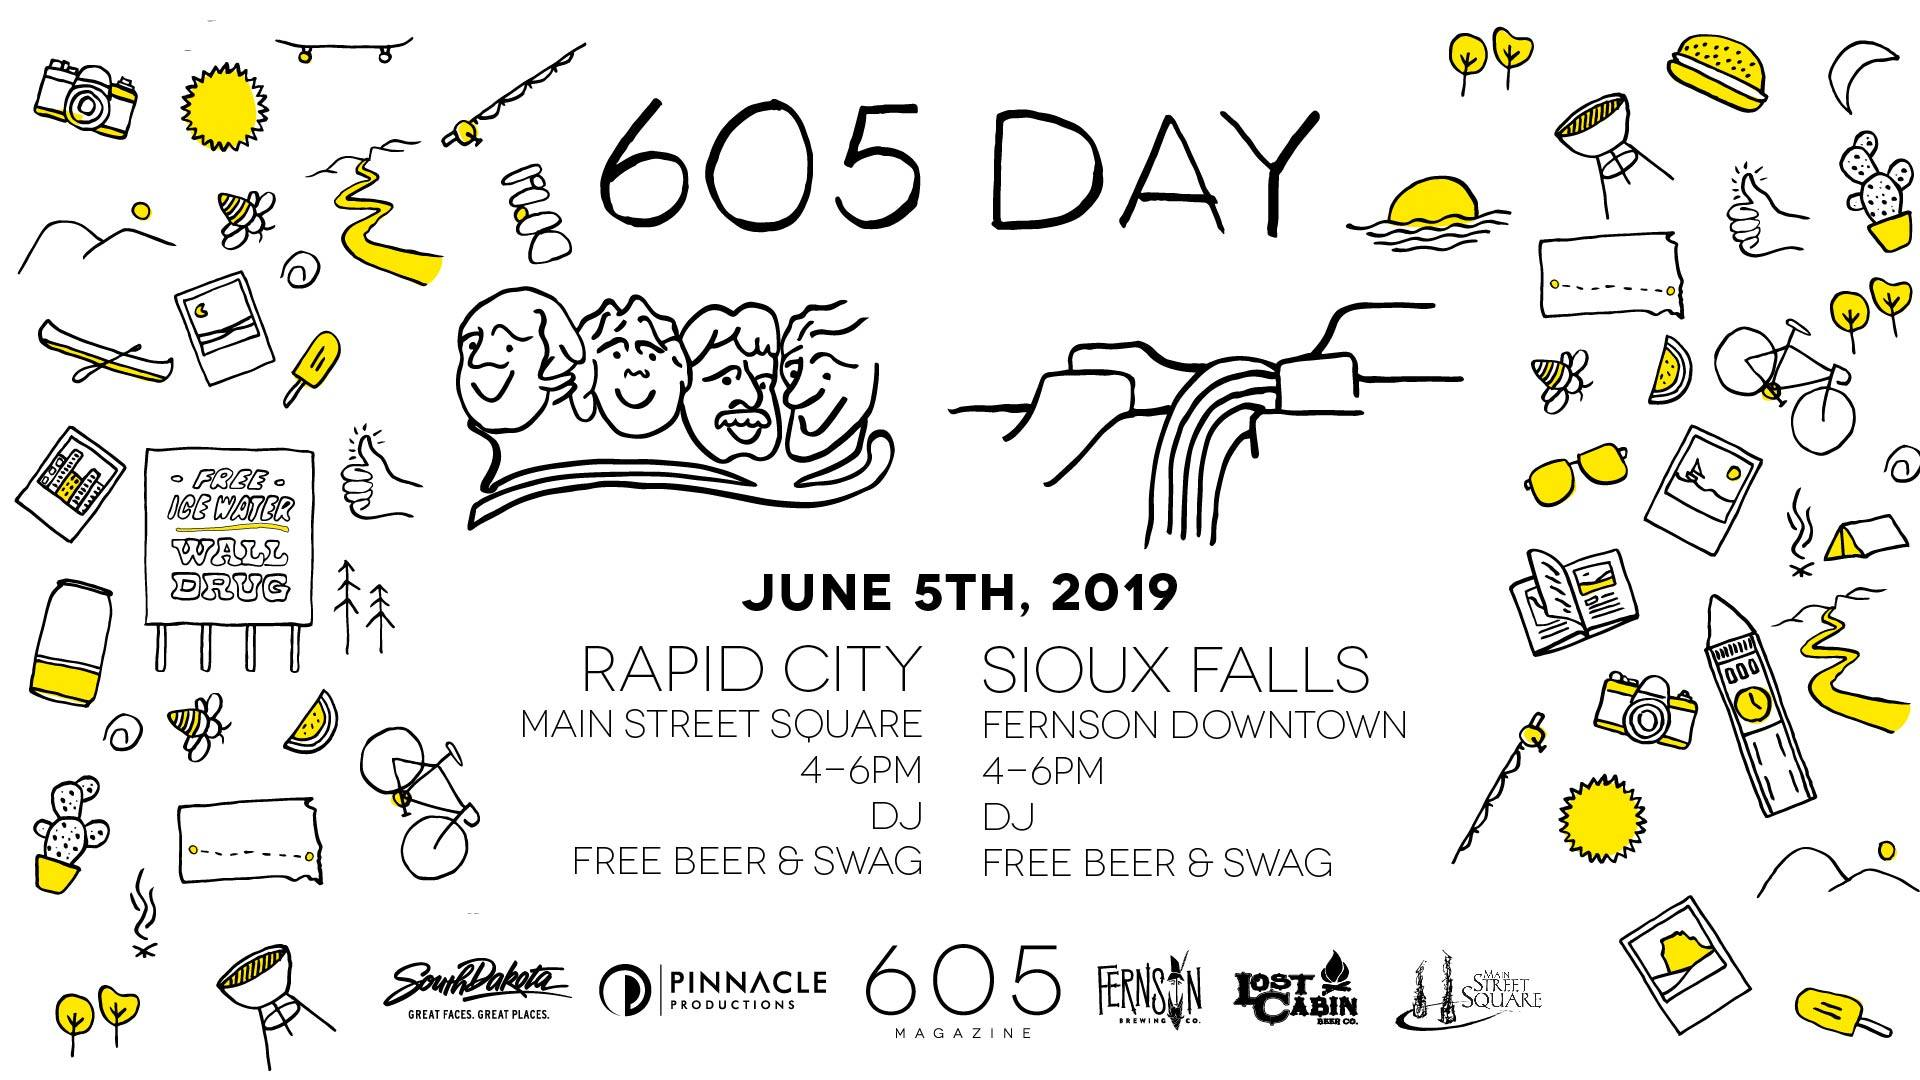 605 Day at Main Street Square in Rapid City, SD